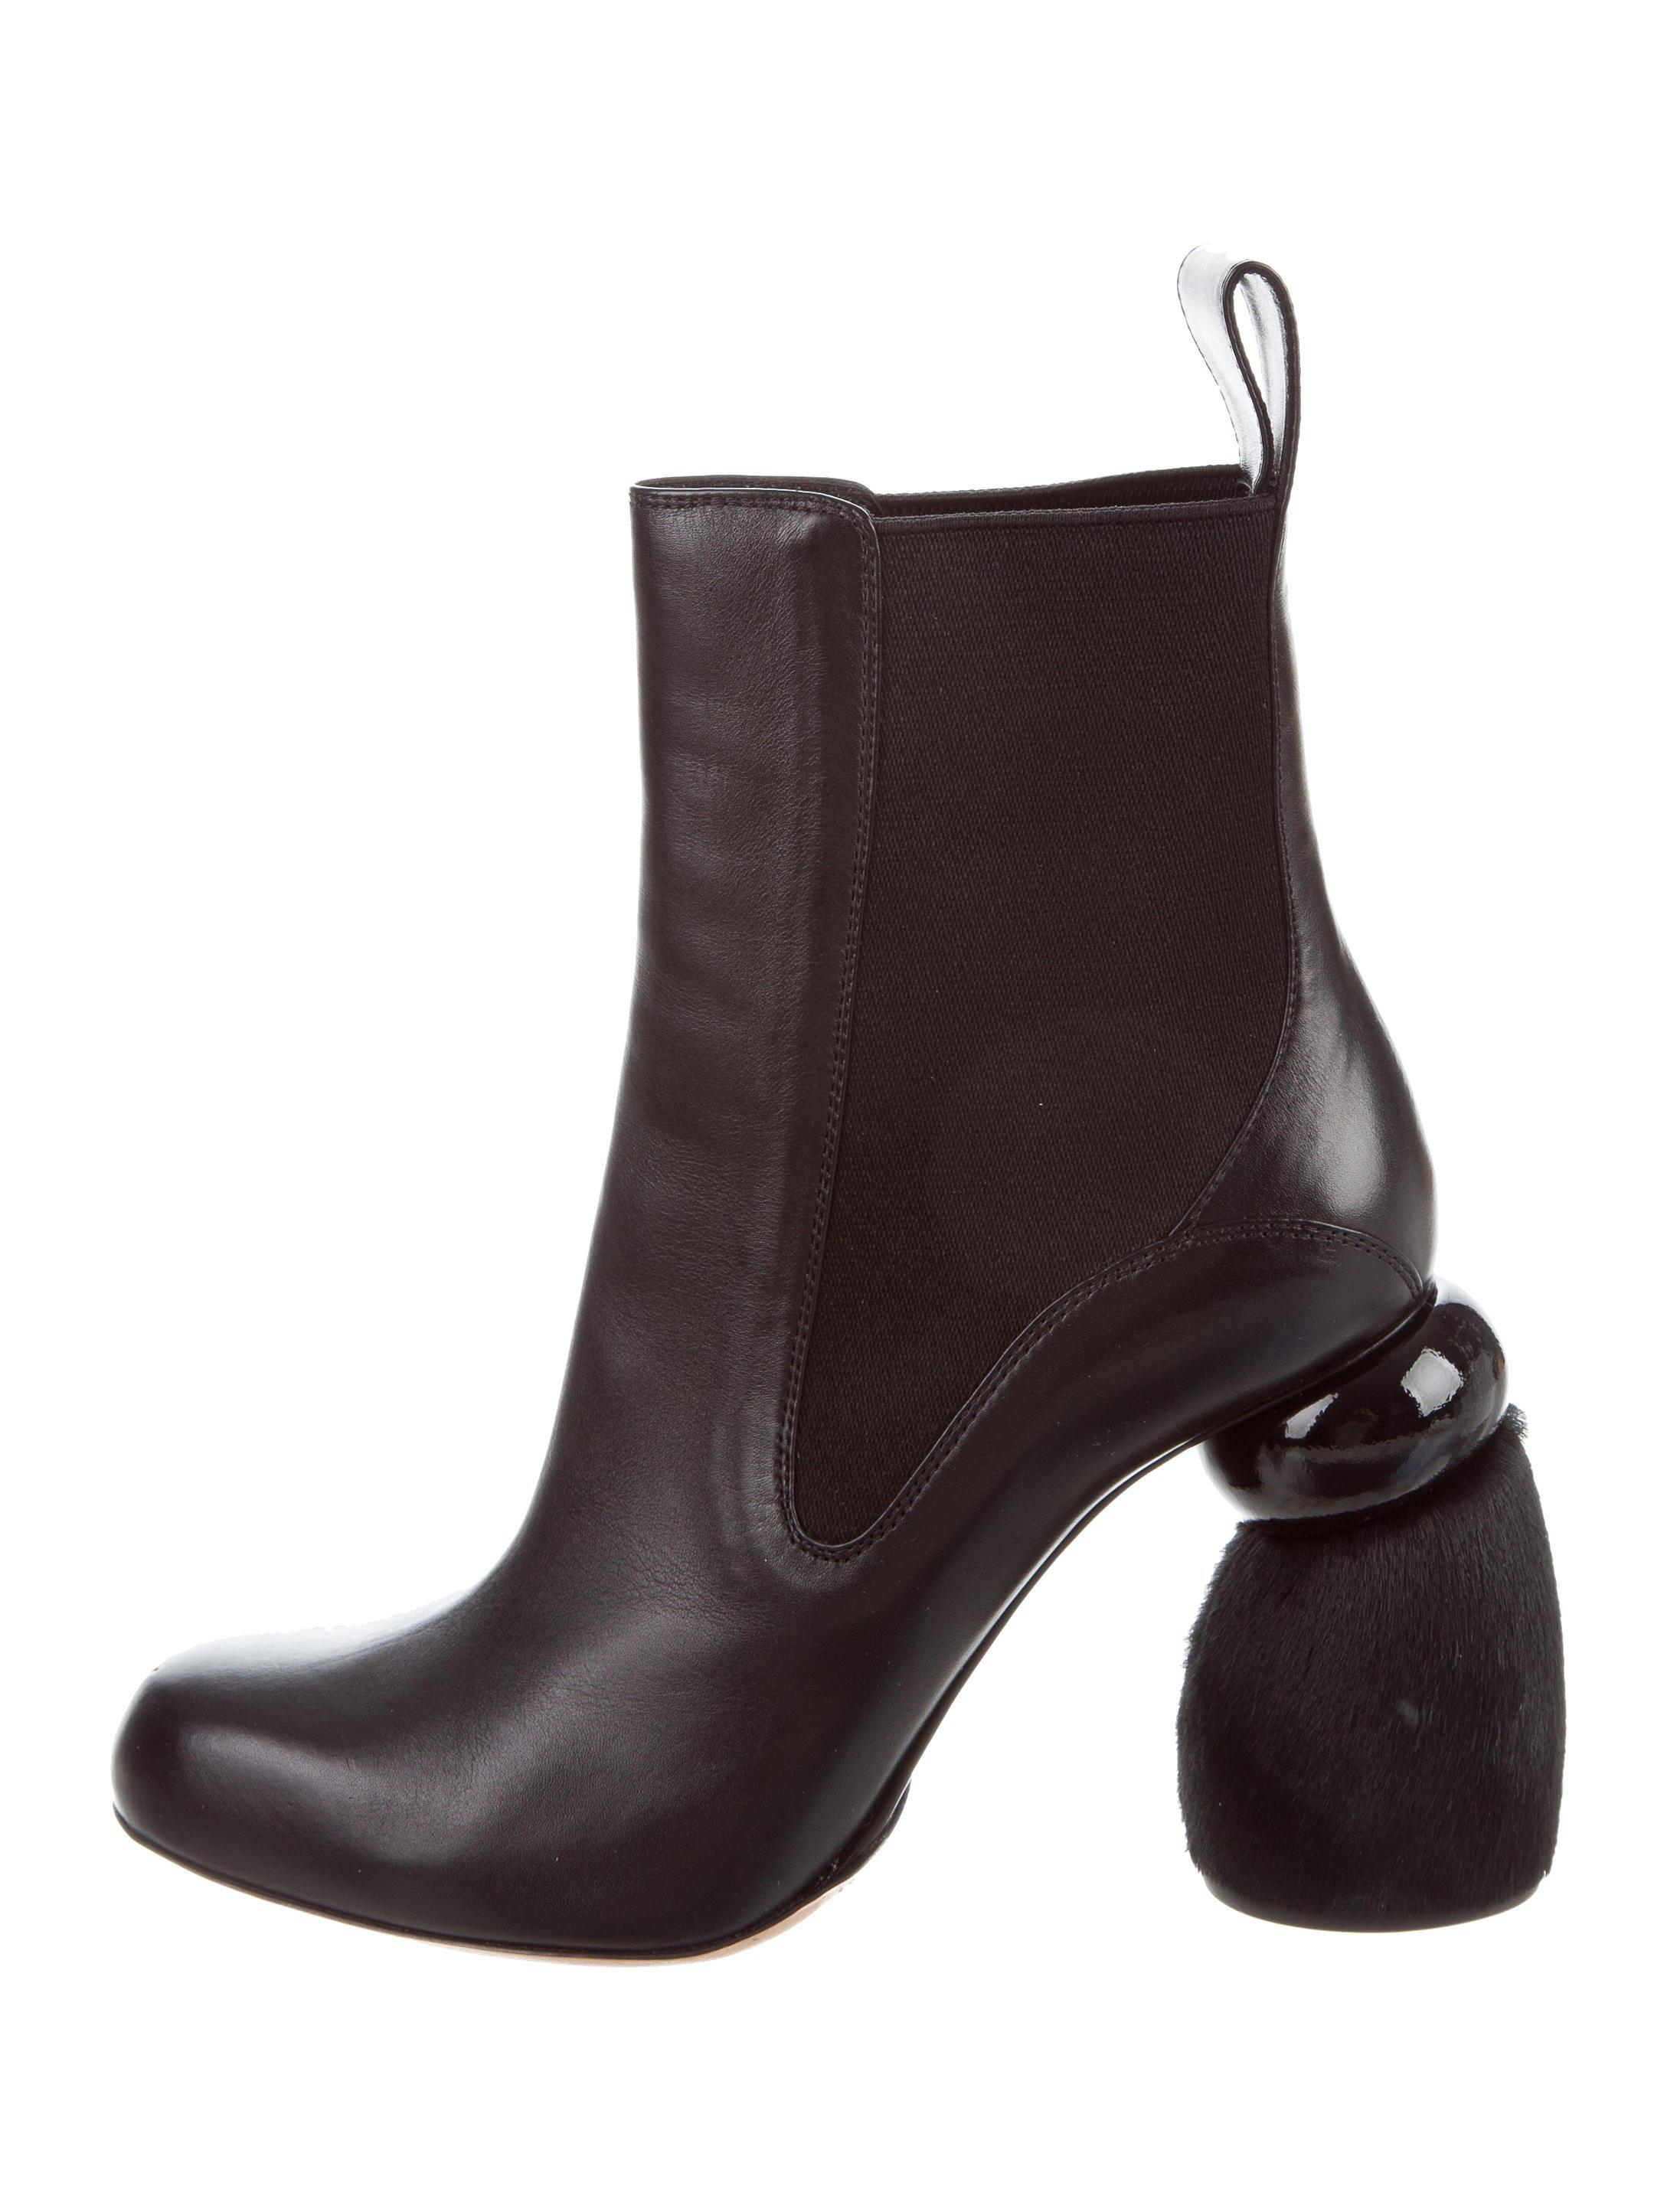 Dries Van Noten Leather Round-Toe Boots w/ Tags where to buy enjoy shopping for cheap price cheap 100% original fashion Style cheap price 0i5qTZZUu